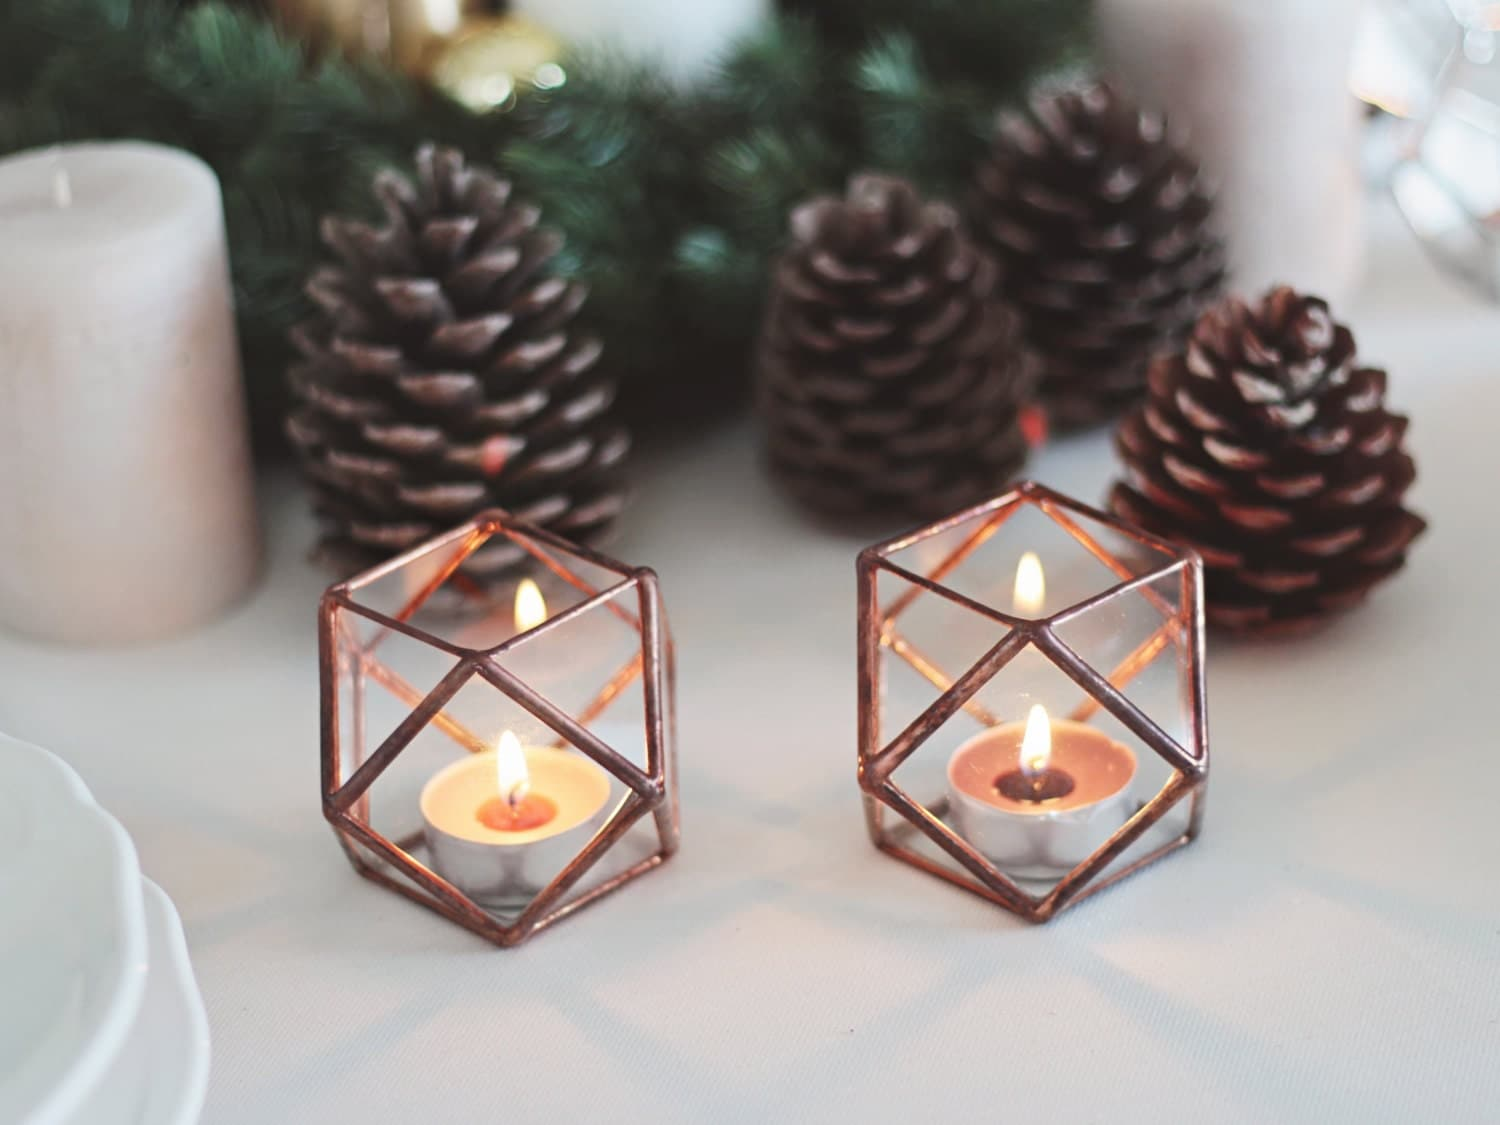 Glass Geometric Candle Holders Wedding Table Decor Halloween